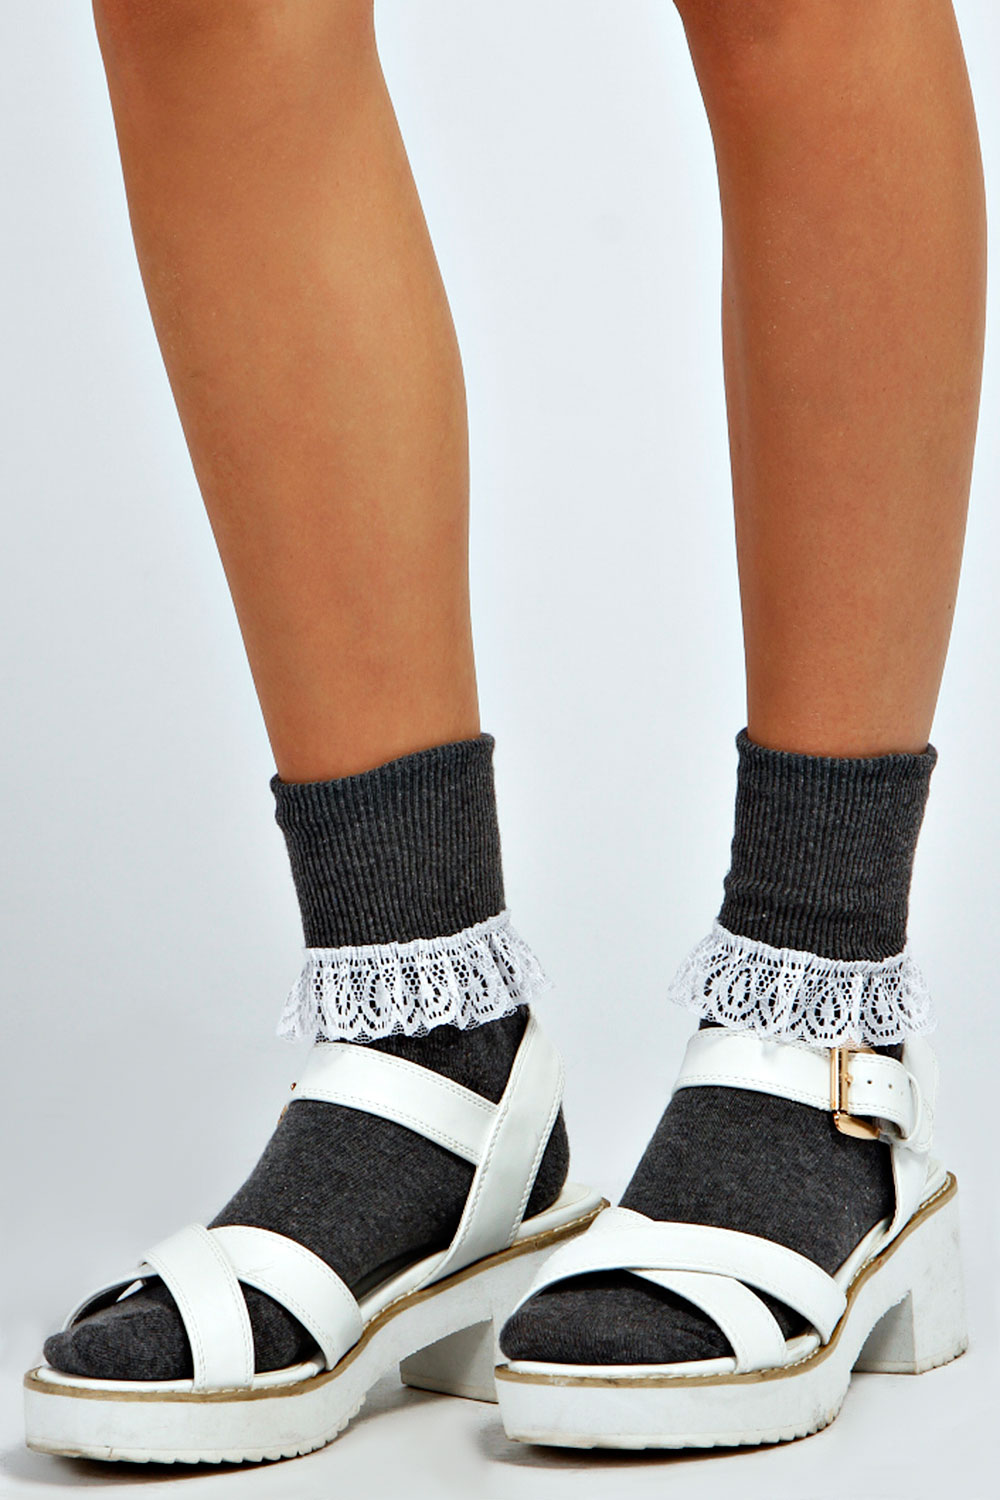 Alexus Lace Frilly Ankle Socks